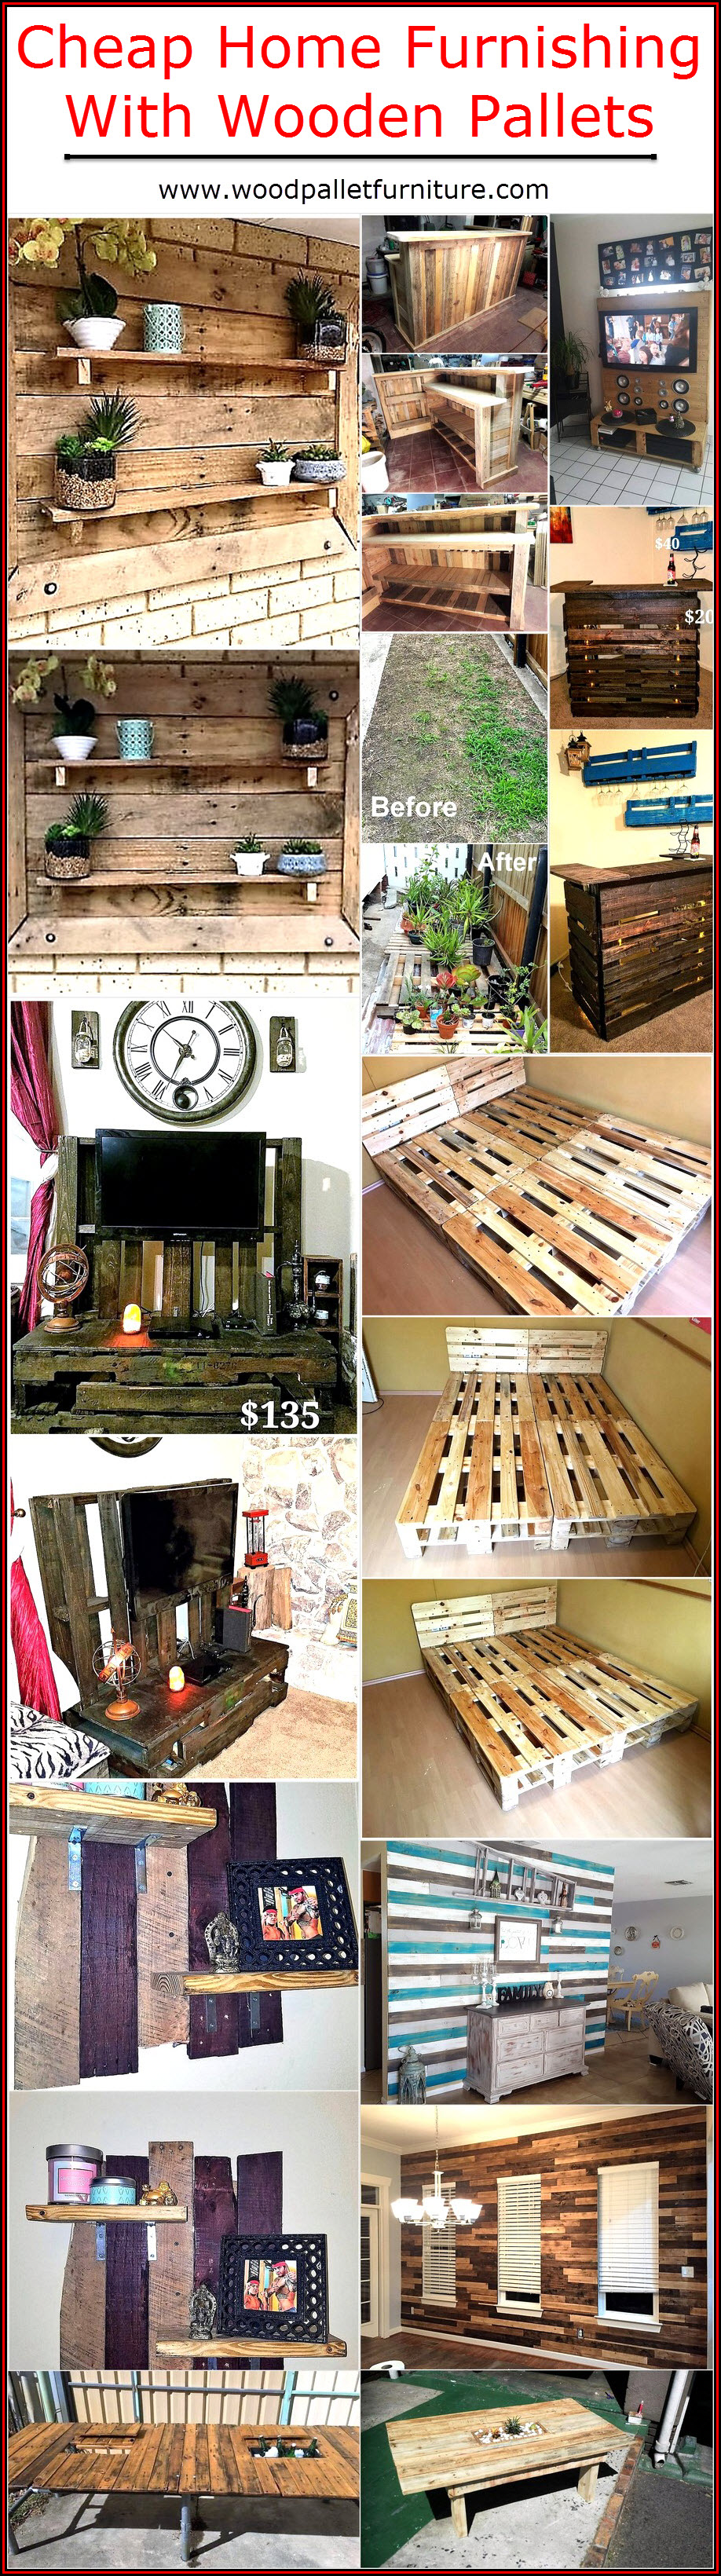 cheap-home-furnishing-with-wooden-pallets